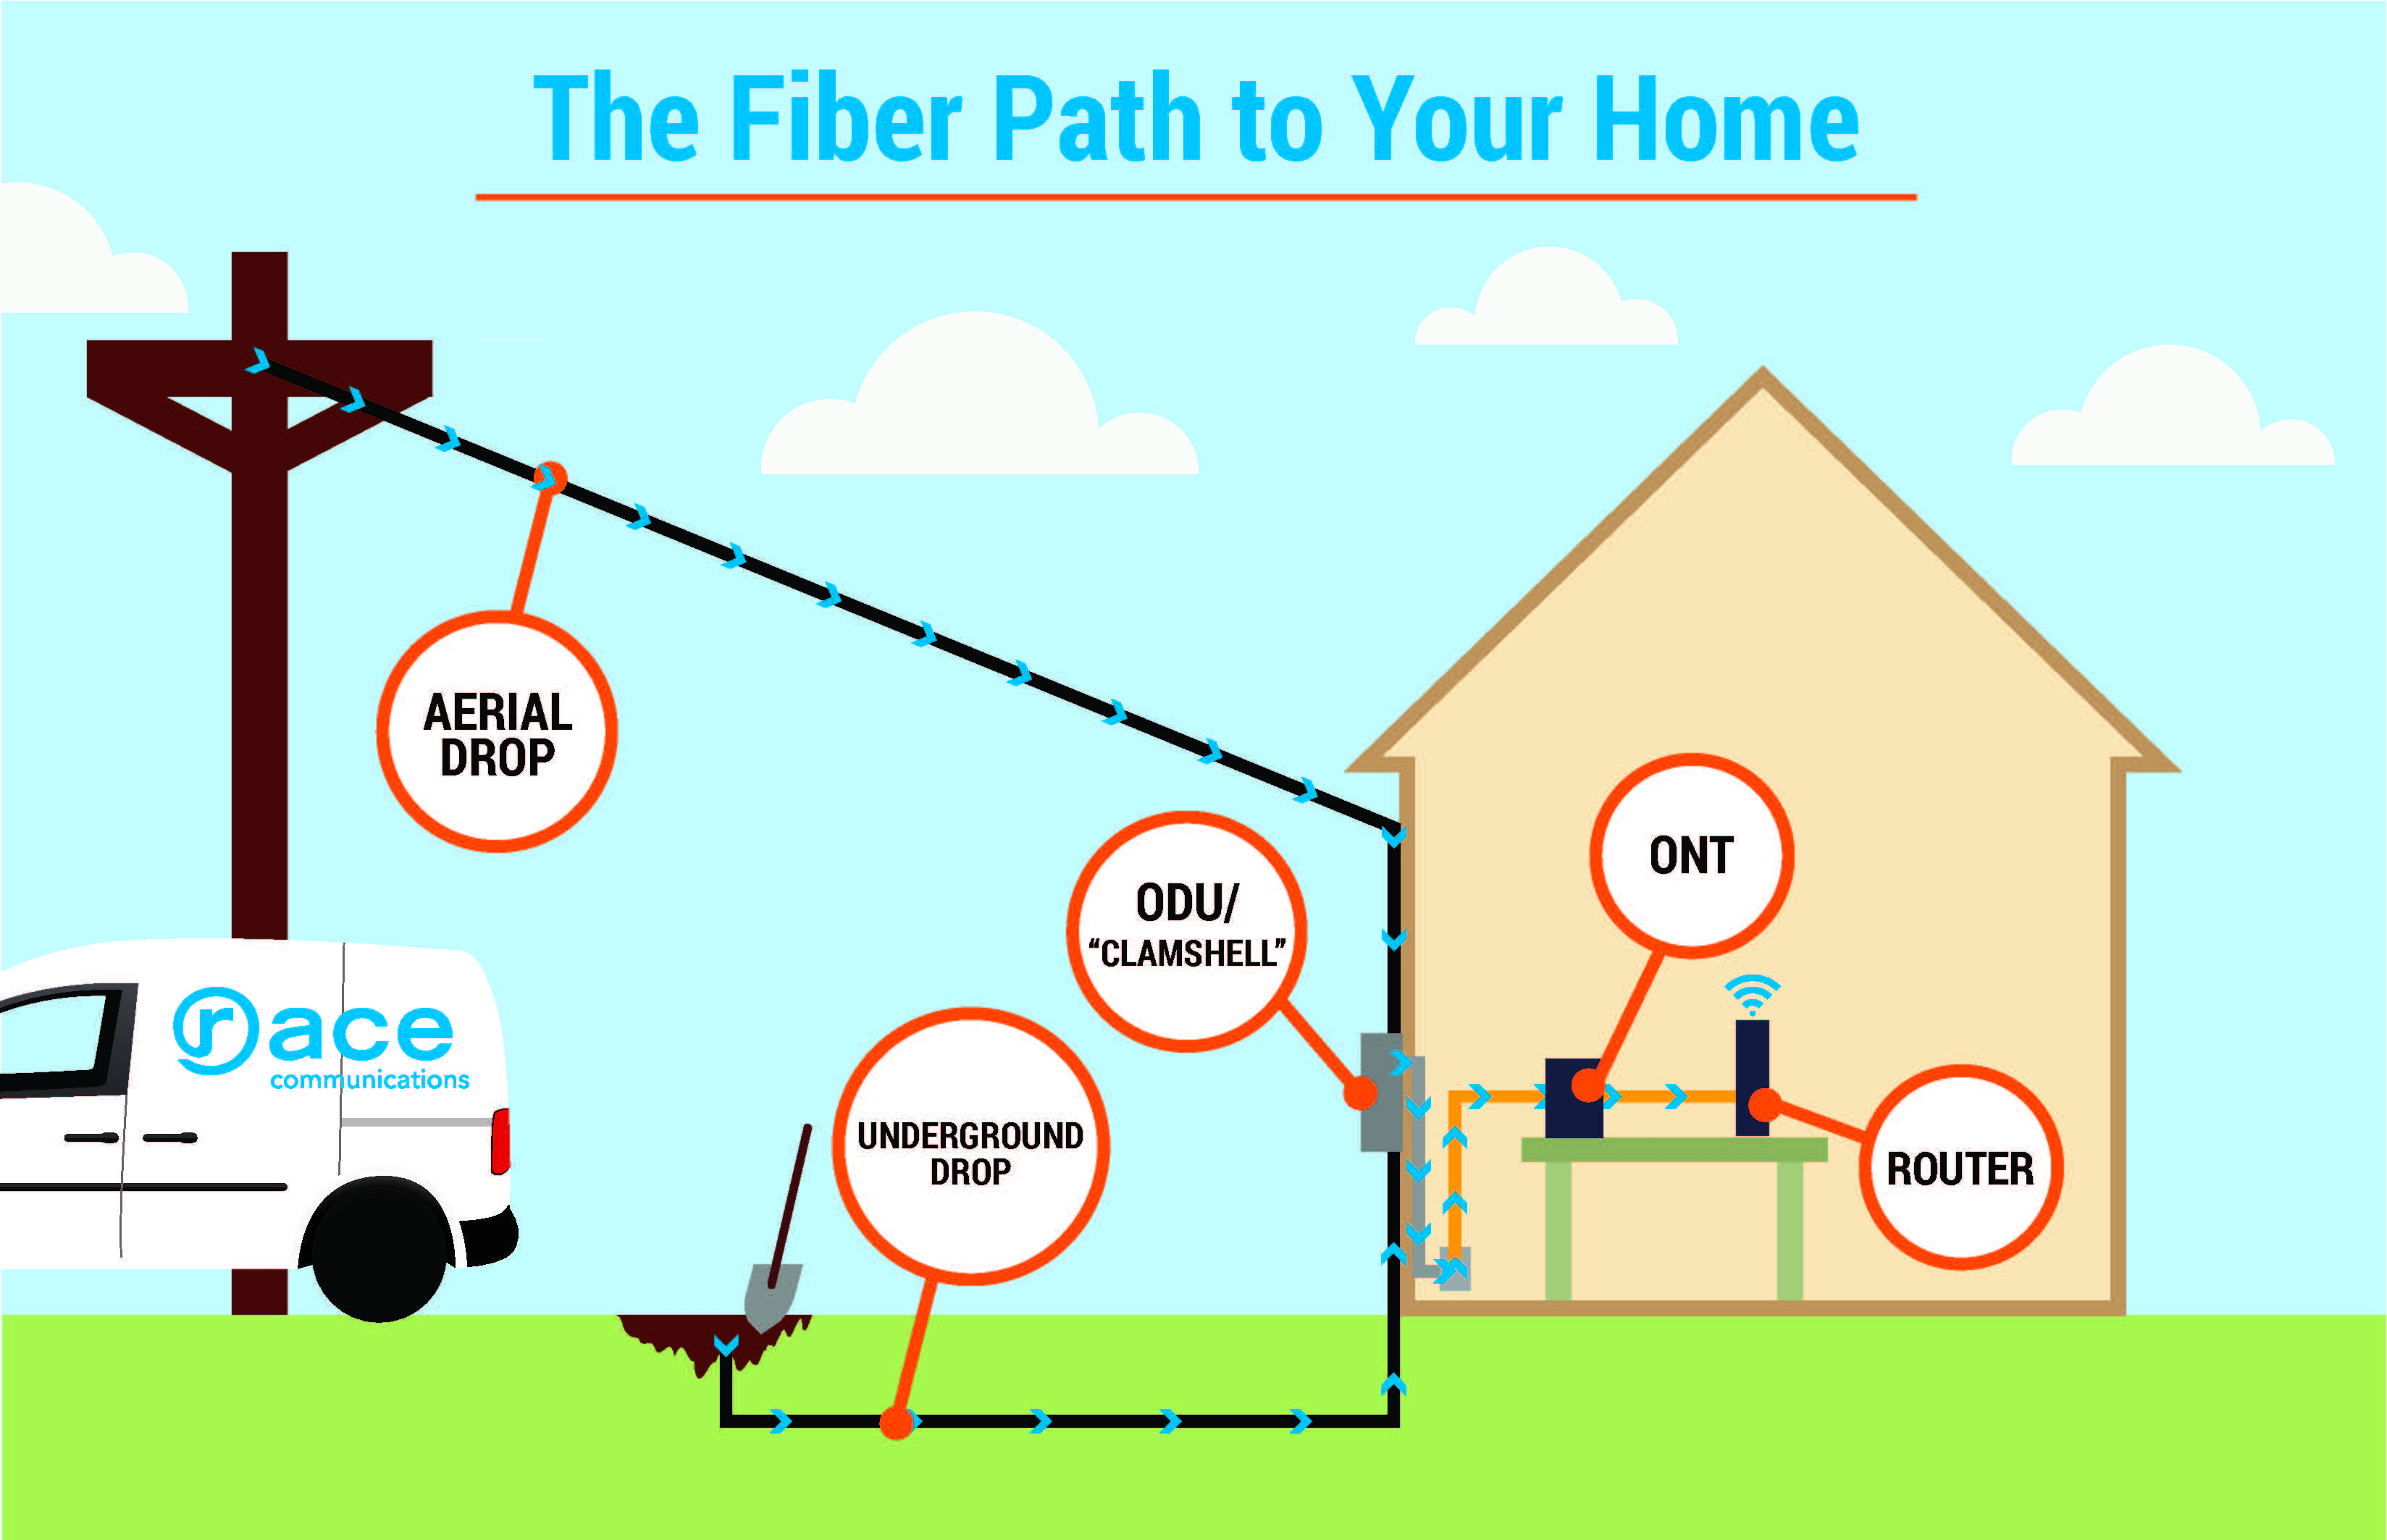 Race_The Fiber Path to Your Home_2